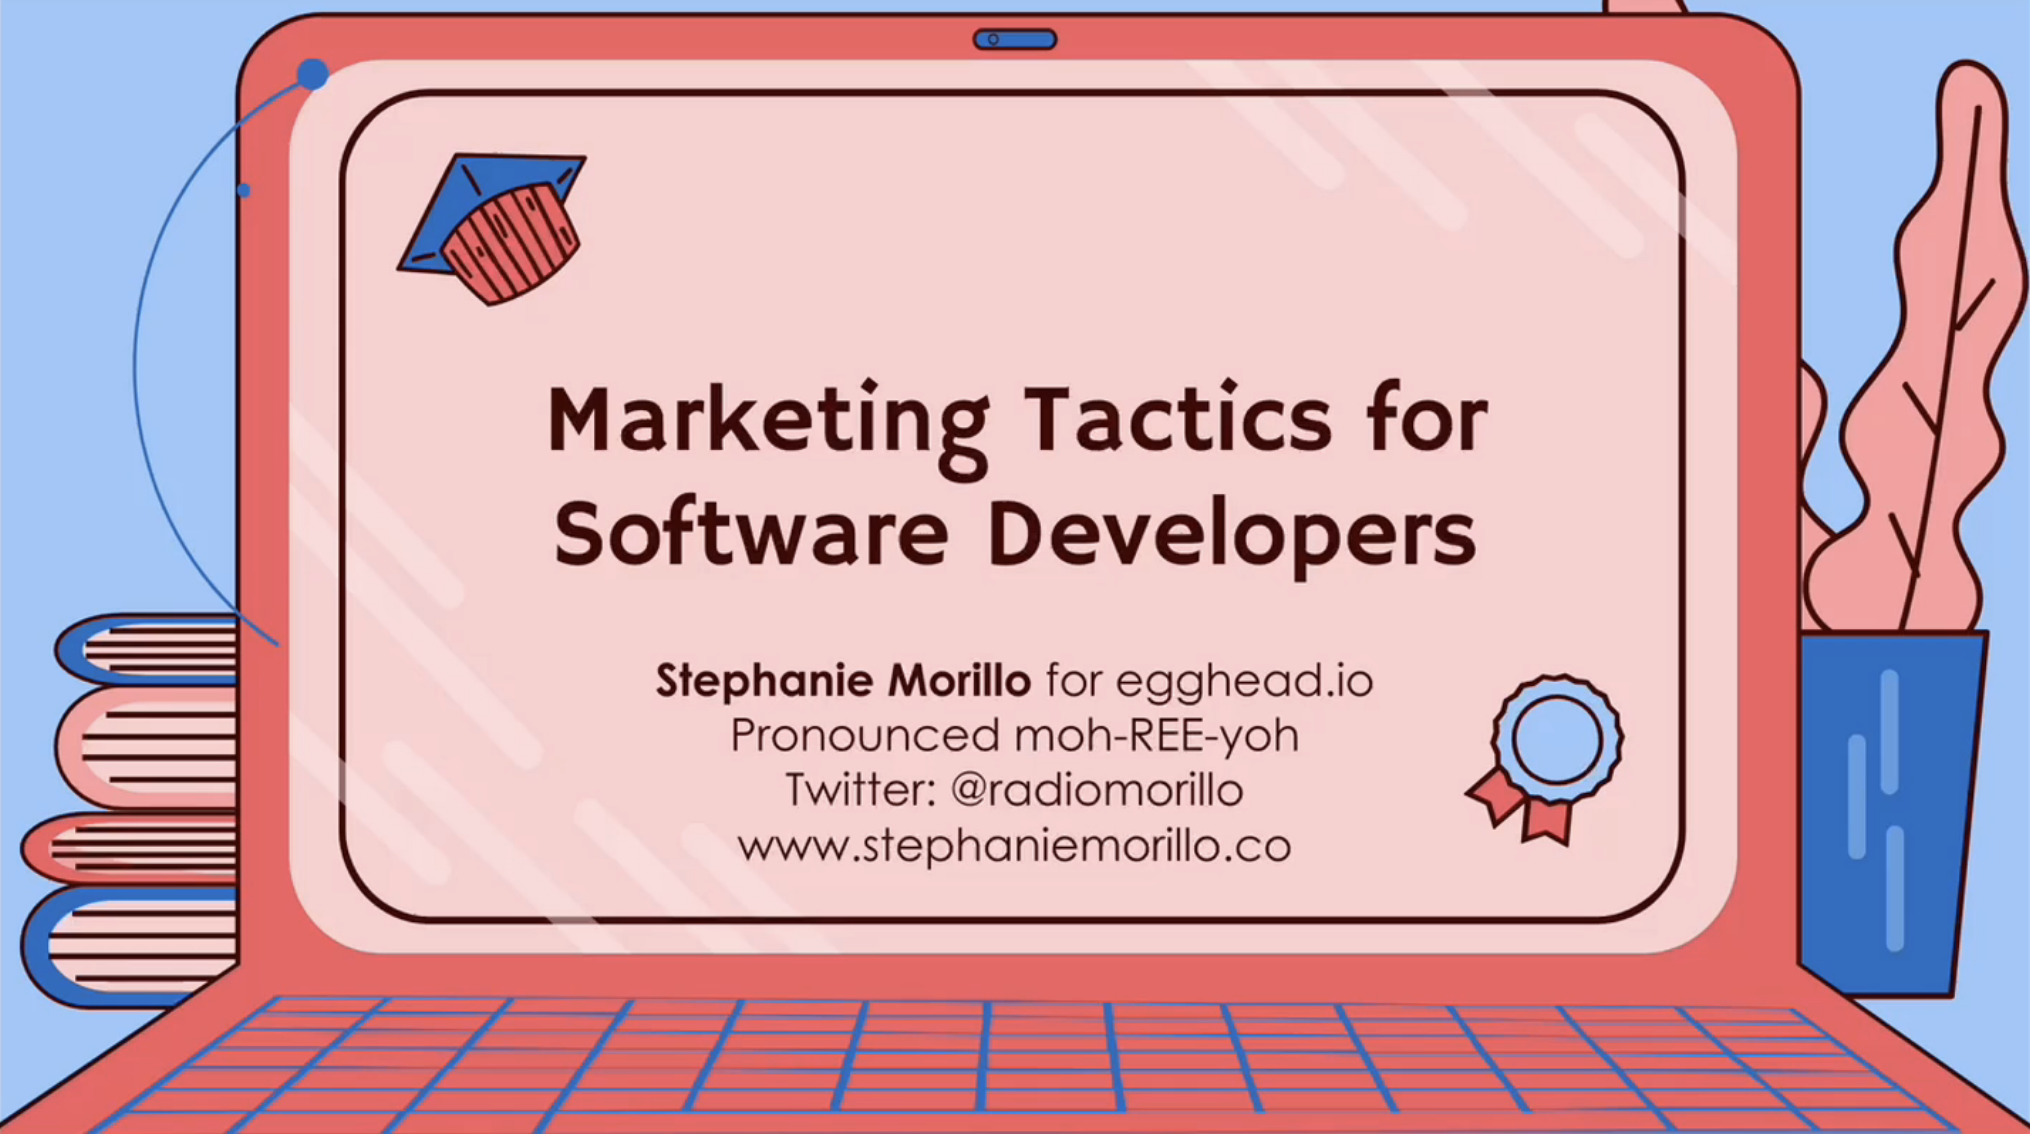 Marketing Tactics for Software Developers